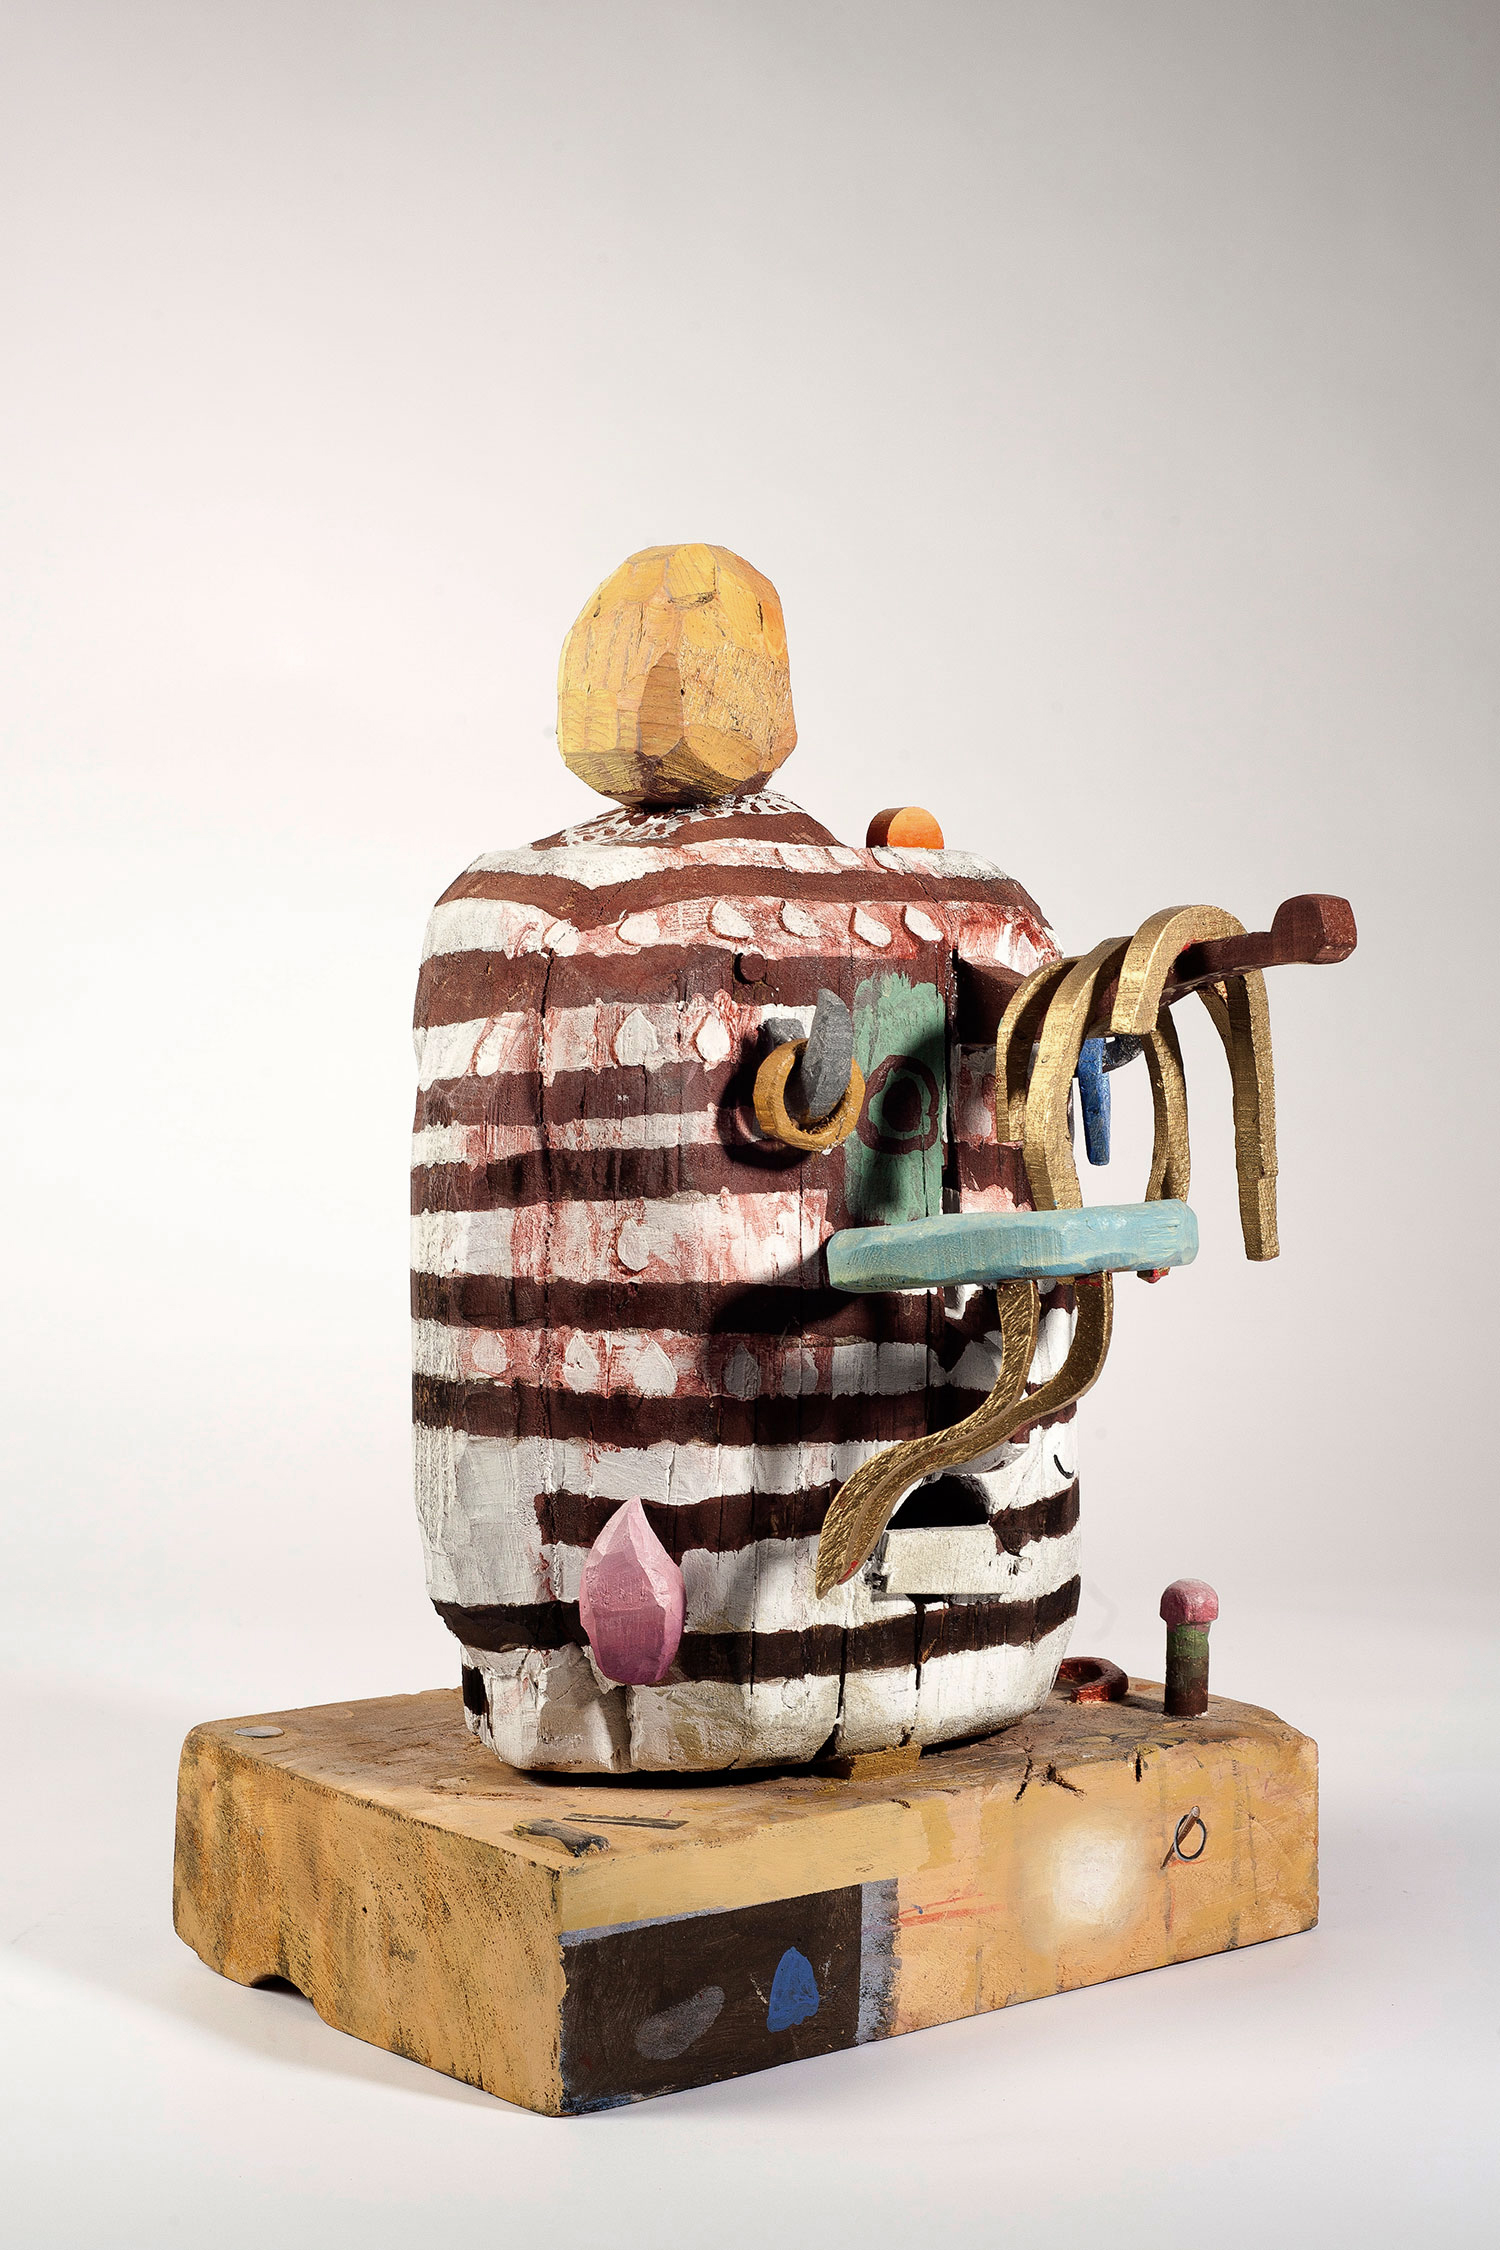 Jewelry holder with stripes, wood and paint,20x14x9 inches, 2016.